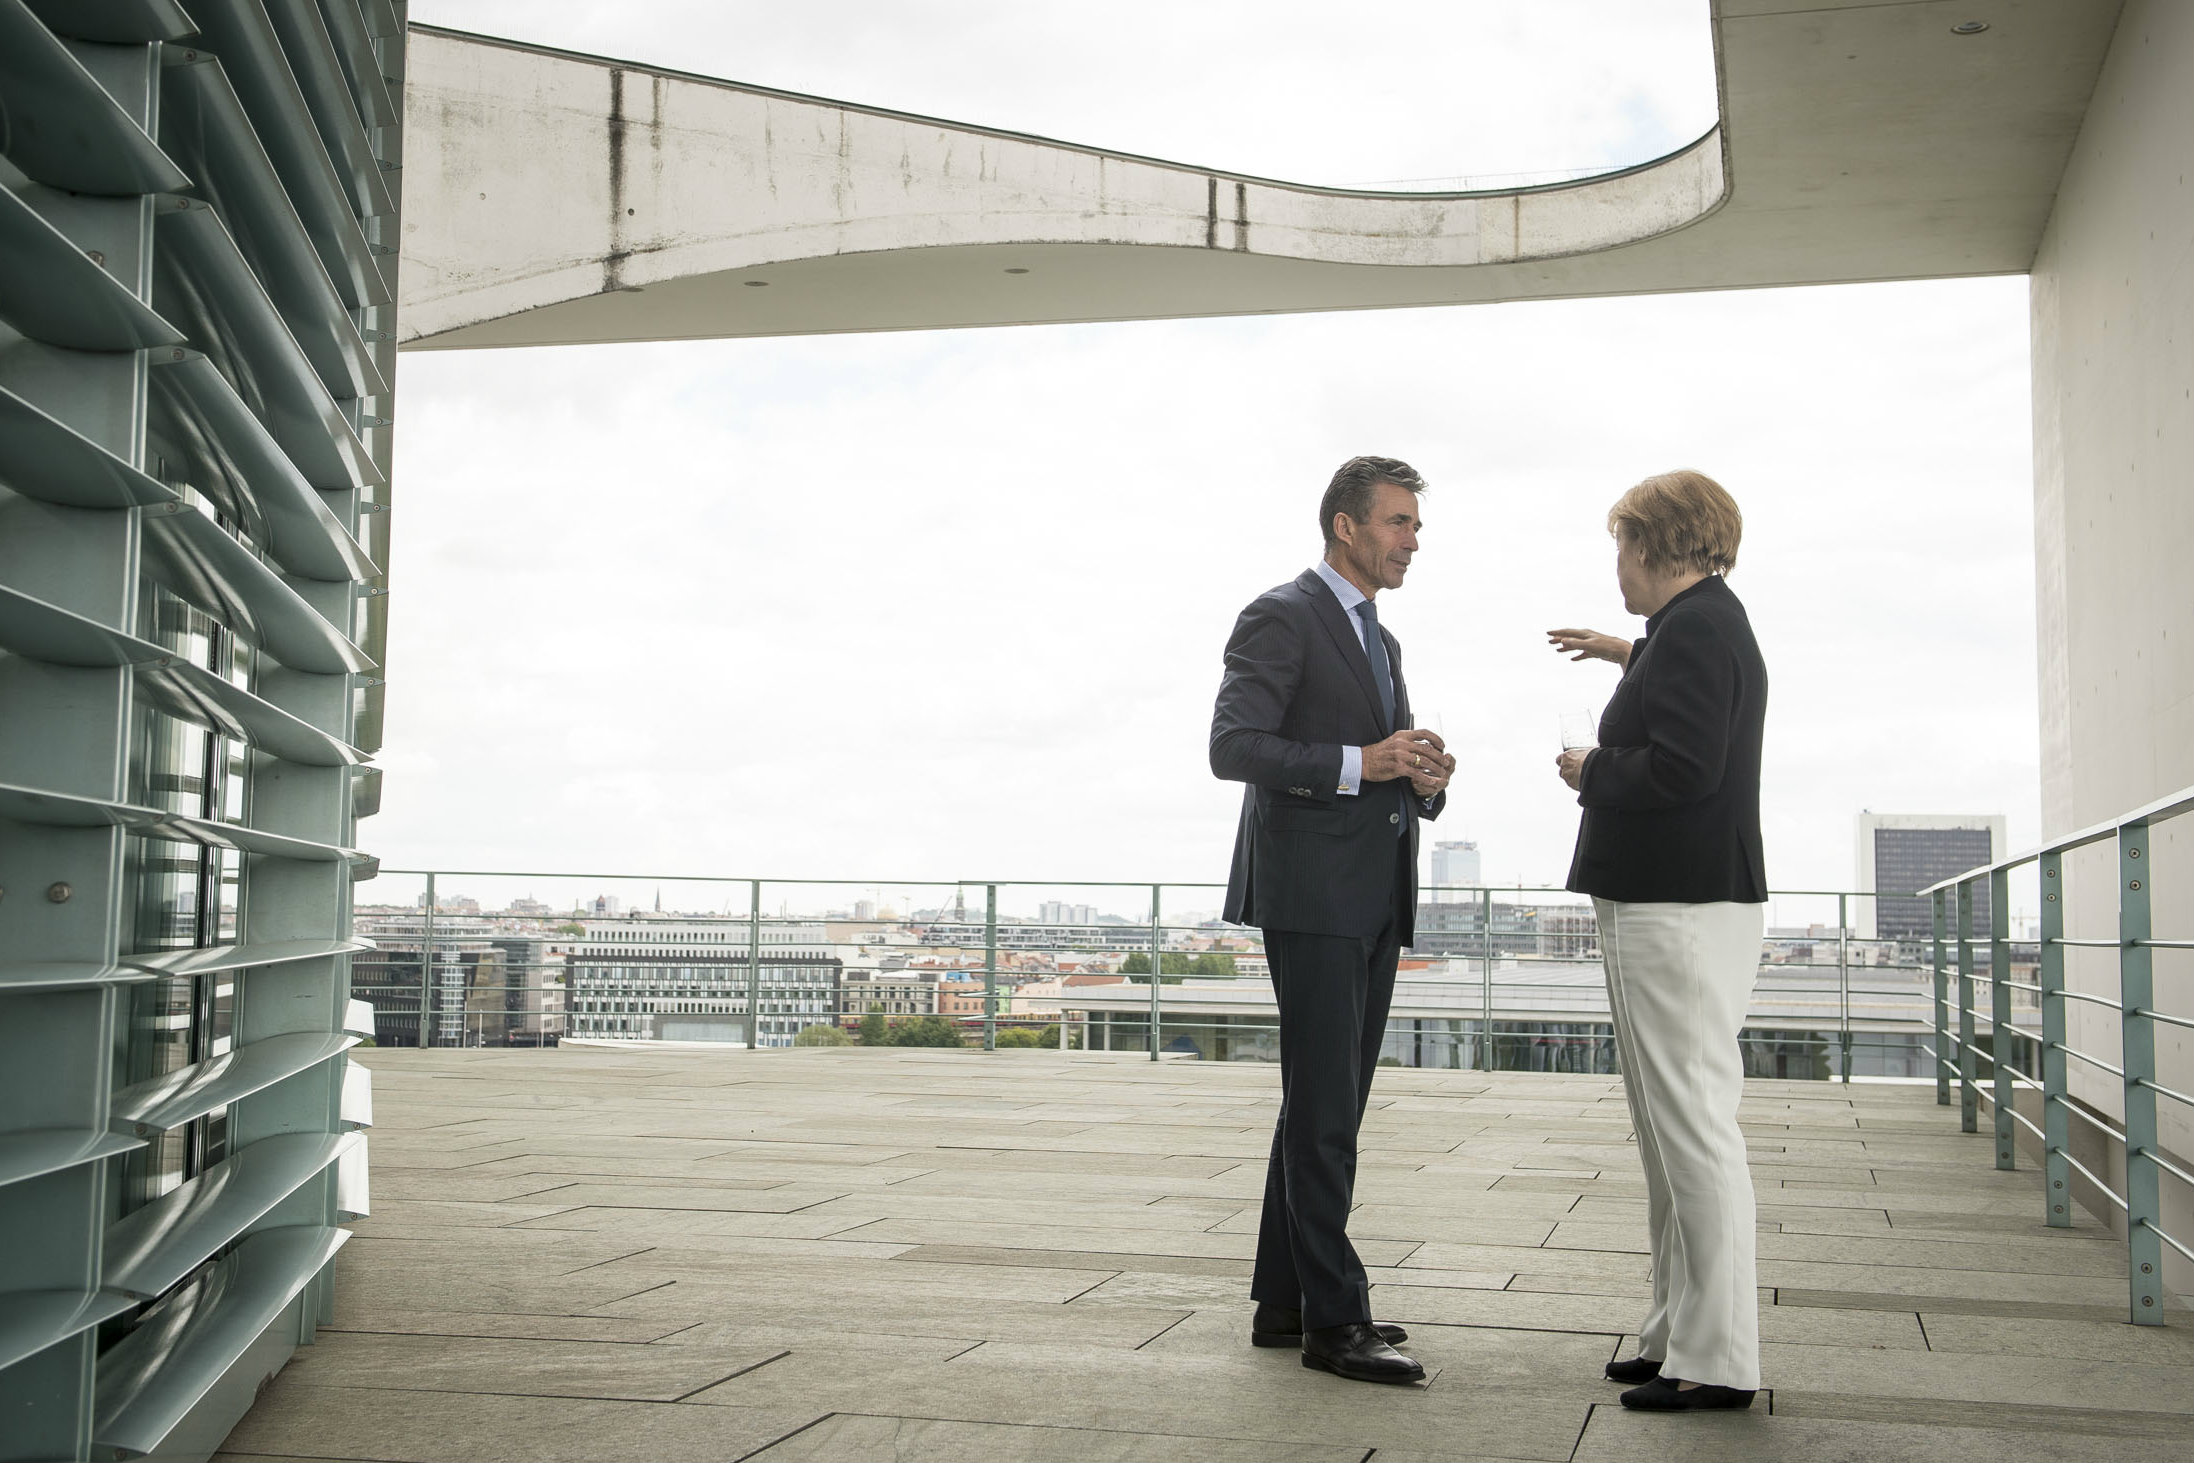 NATO Secretary General Anders Fogh Rasmussen meets with German Chancellor Angela Merkel at her residence in Berlin. [NATO]